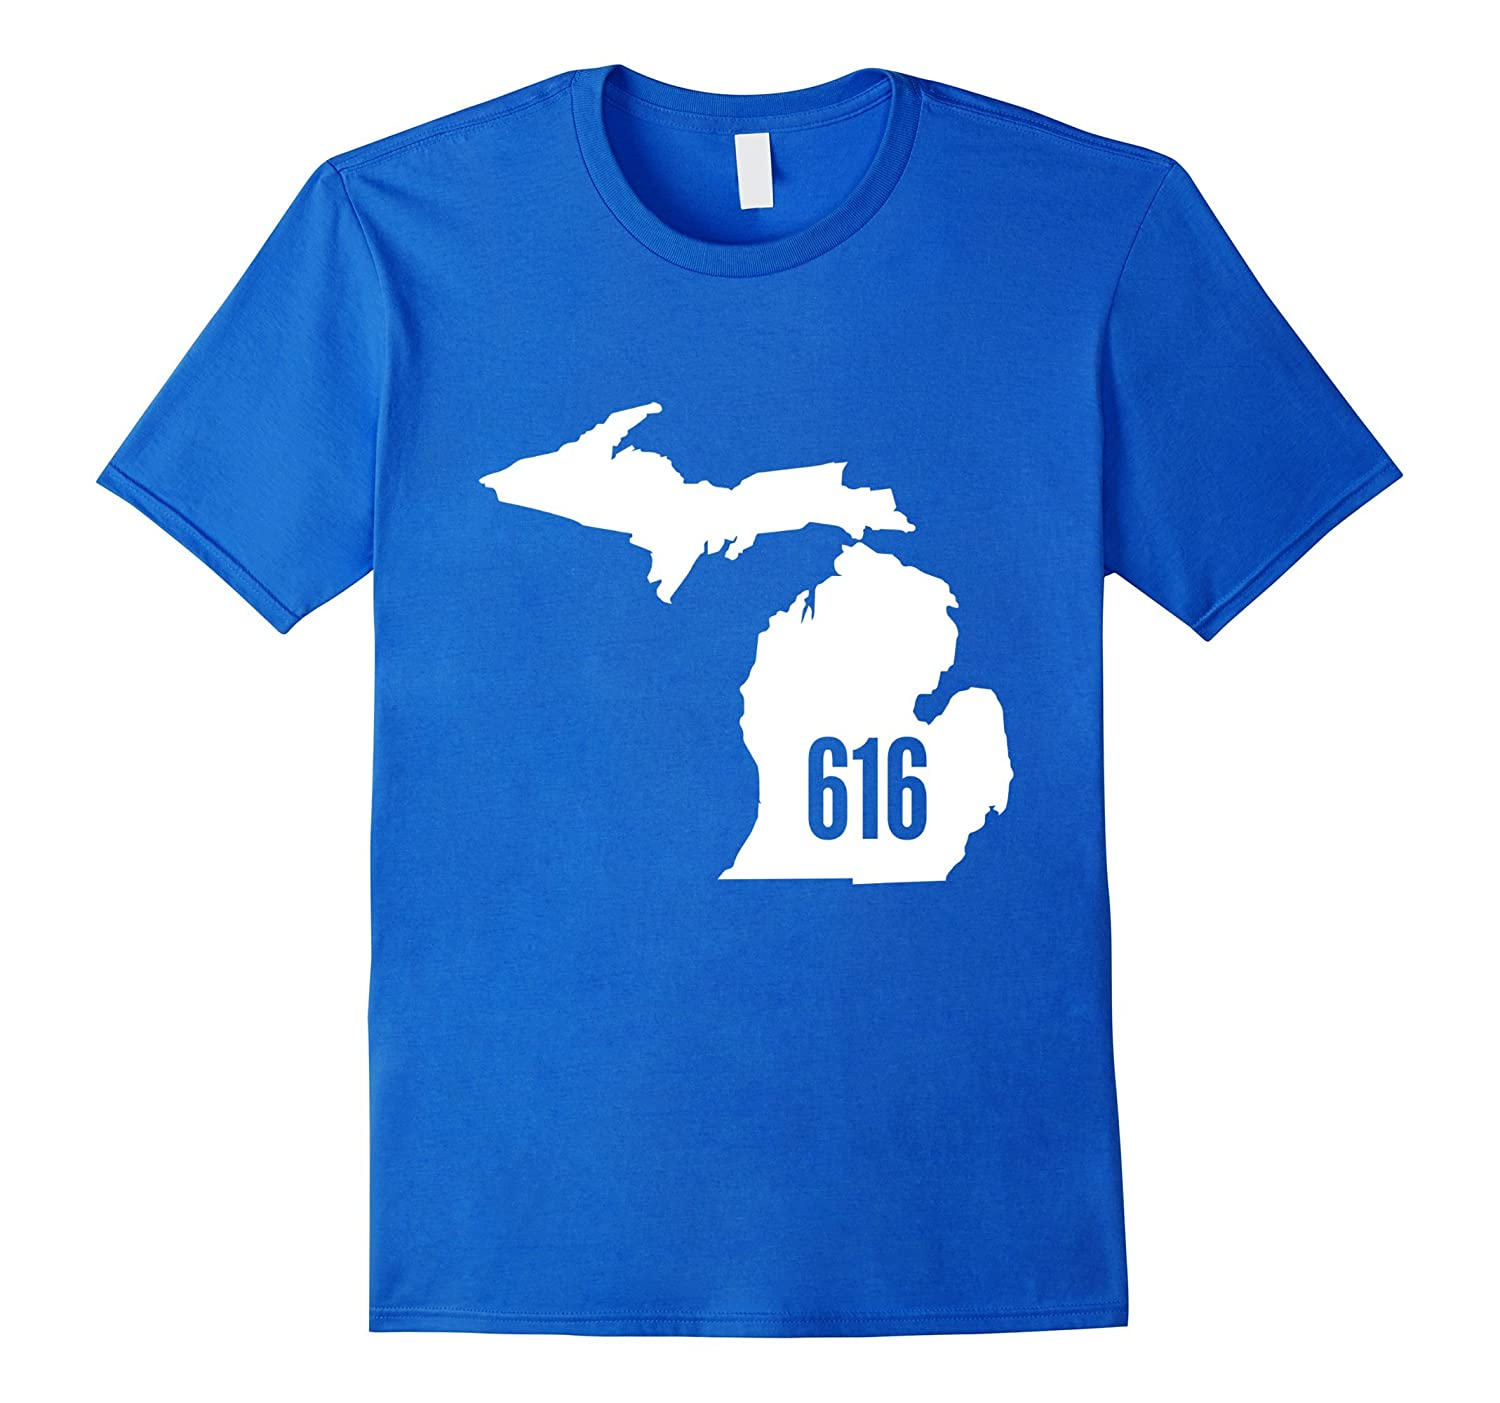 616 michigan state outline pride area code t shirt for 6016 area code